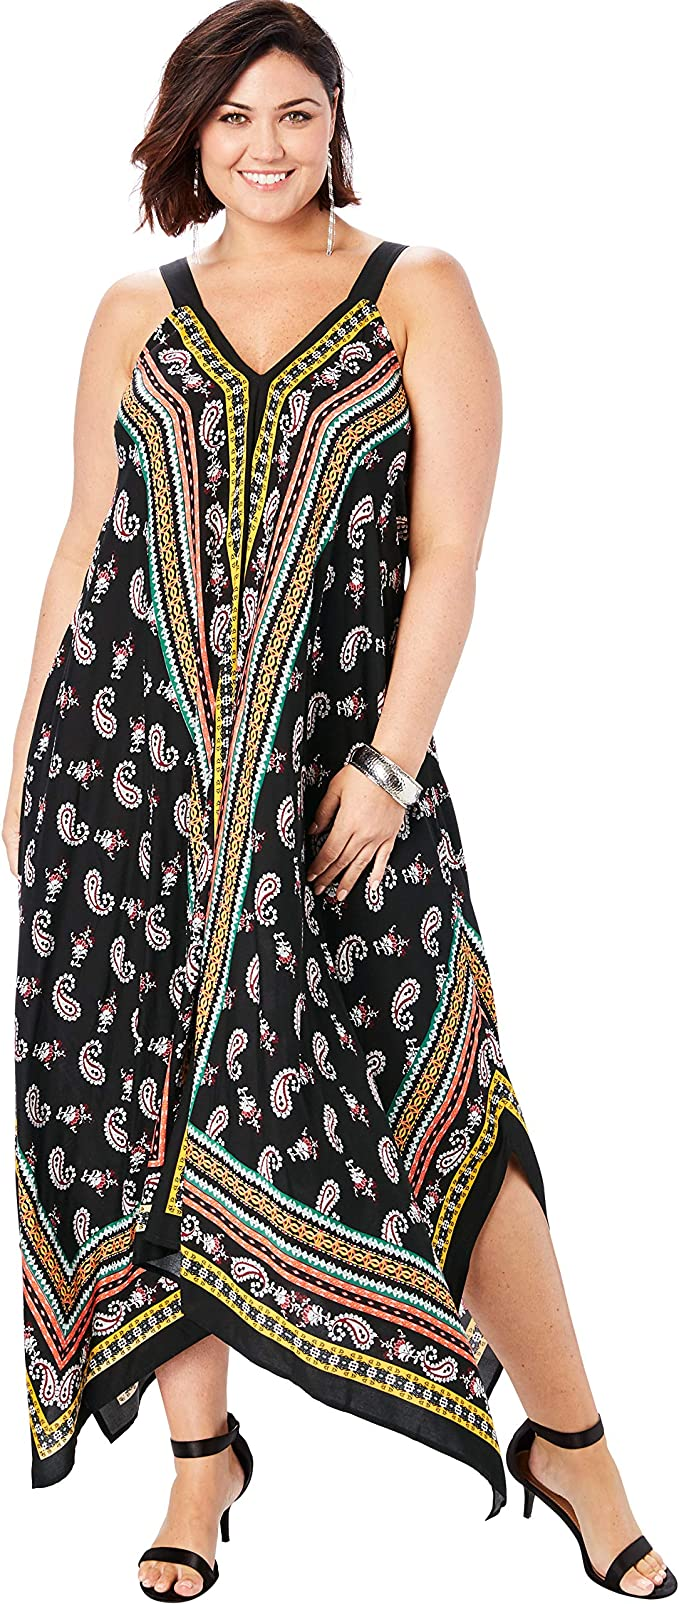 Women's Plus Size Scarf-Print Maxi Dress with Handkerchief Hem